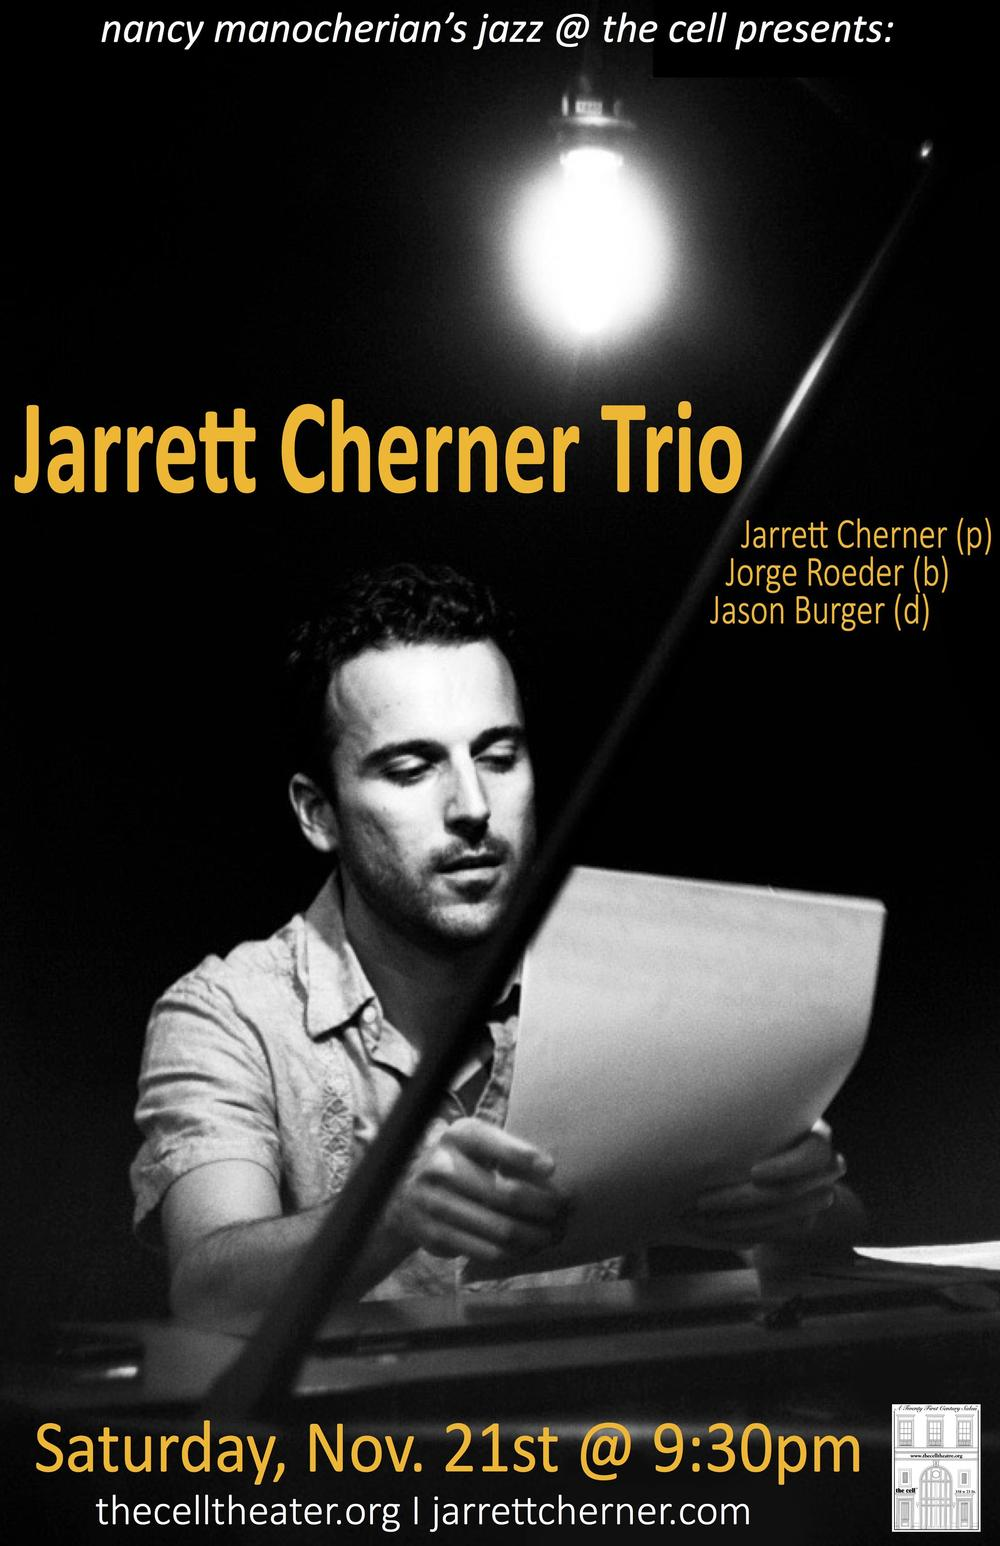 "After completing his undergraduate work at Tufts University (B.S. Mathematics, Summa Cum Laude, Phi Beta Kappa) and the New England Conservatory of Music (U.D. in Jazz Piano Performance), pianist, composer, and educator Jarrett Cherner moved to San Francisco where he quickly gained a reputation as ""one of the most exciting young pianist-composers on the Bay Area scene"" (San Jose Mercury News). His debut album as a leader, Burgeoning (2006), earned him recognition from the ASCAP Young Jazz Composer Awards and critics alike. In 2008, Cherner relocated to New York City where he's currently performing and teaching, having earned a Master's Degree from the Manhattan School of Music in 2010. He has toured throughout the U.S. as well as in South America, Canada, and Europe, both leading his own trio and working as a sideman. Current projects include the Jarrett Cherner Trio and the collective ensemble Sketches, which released Volume One in November 2013, and Volume Two in October 2014."